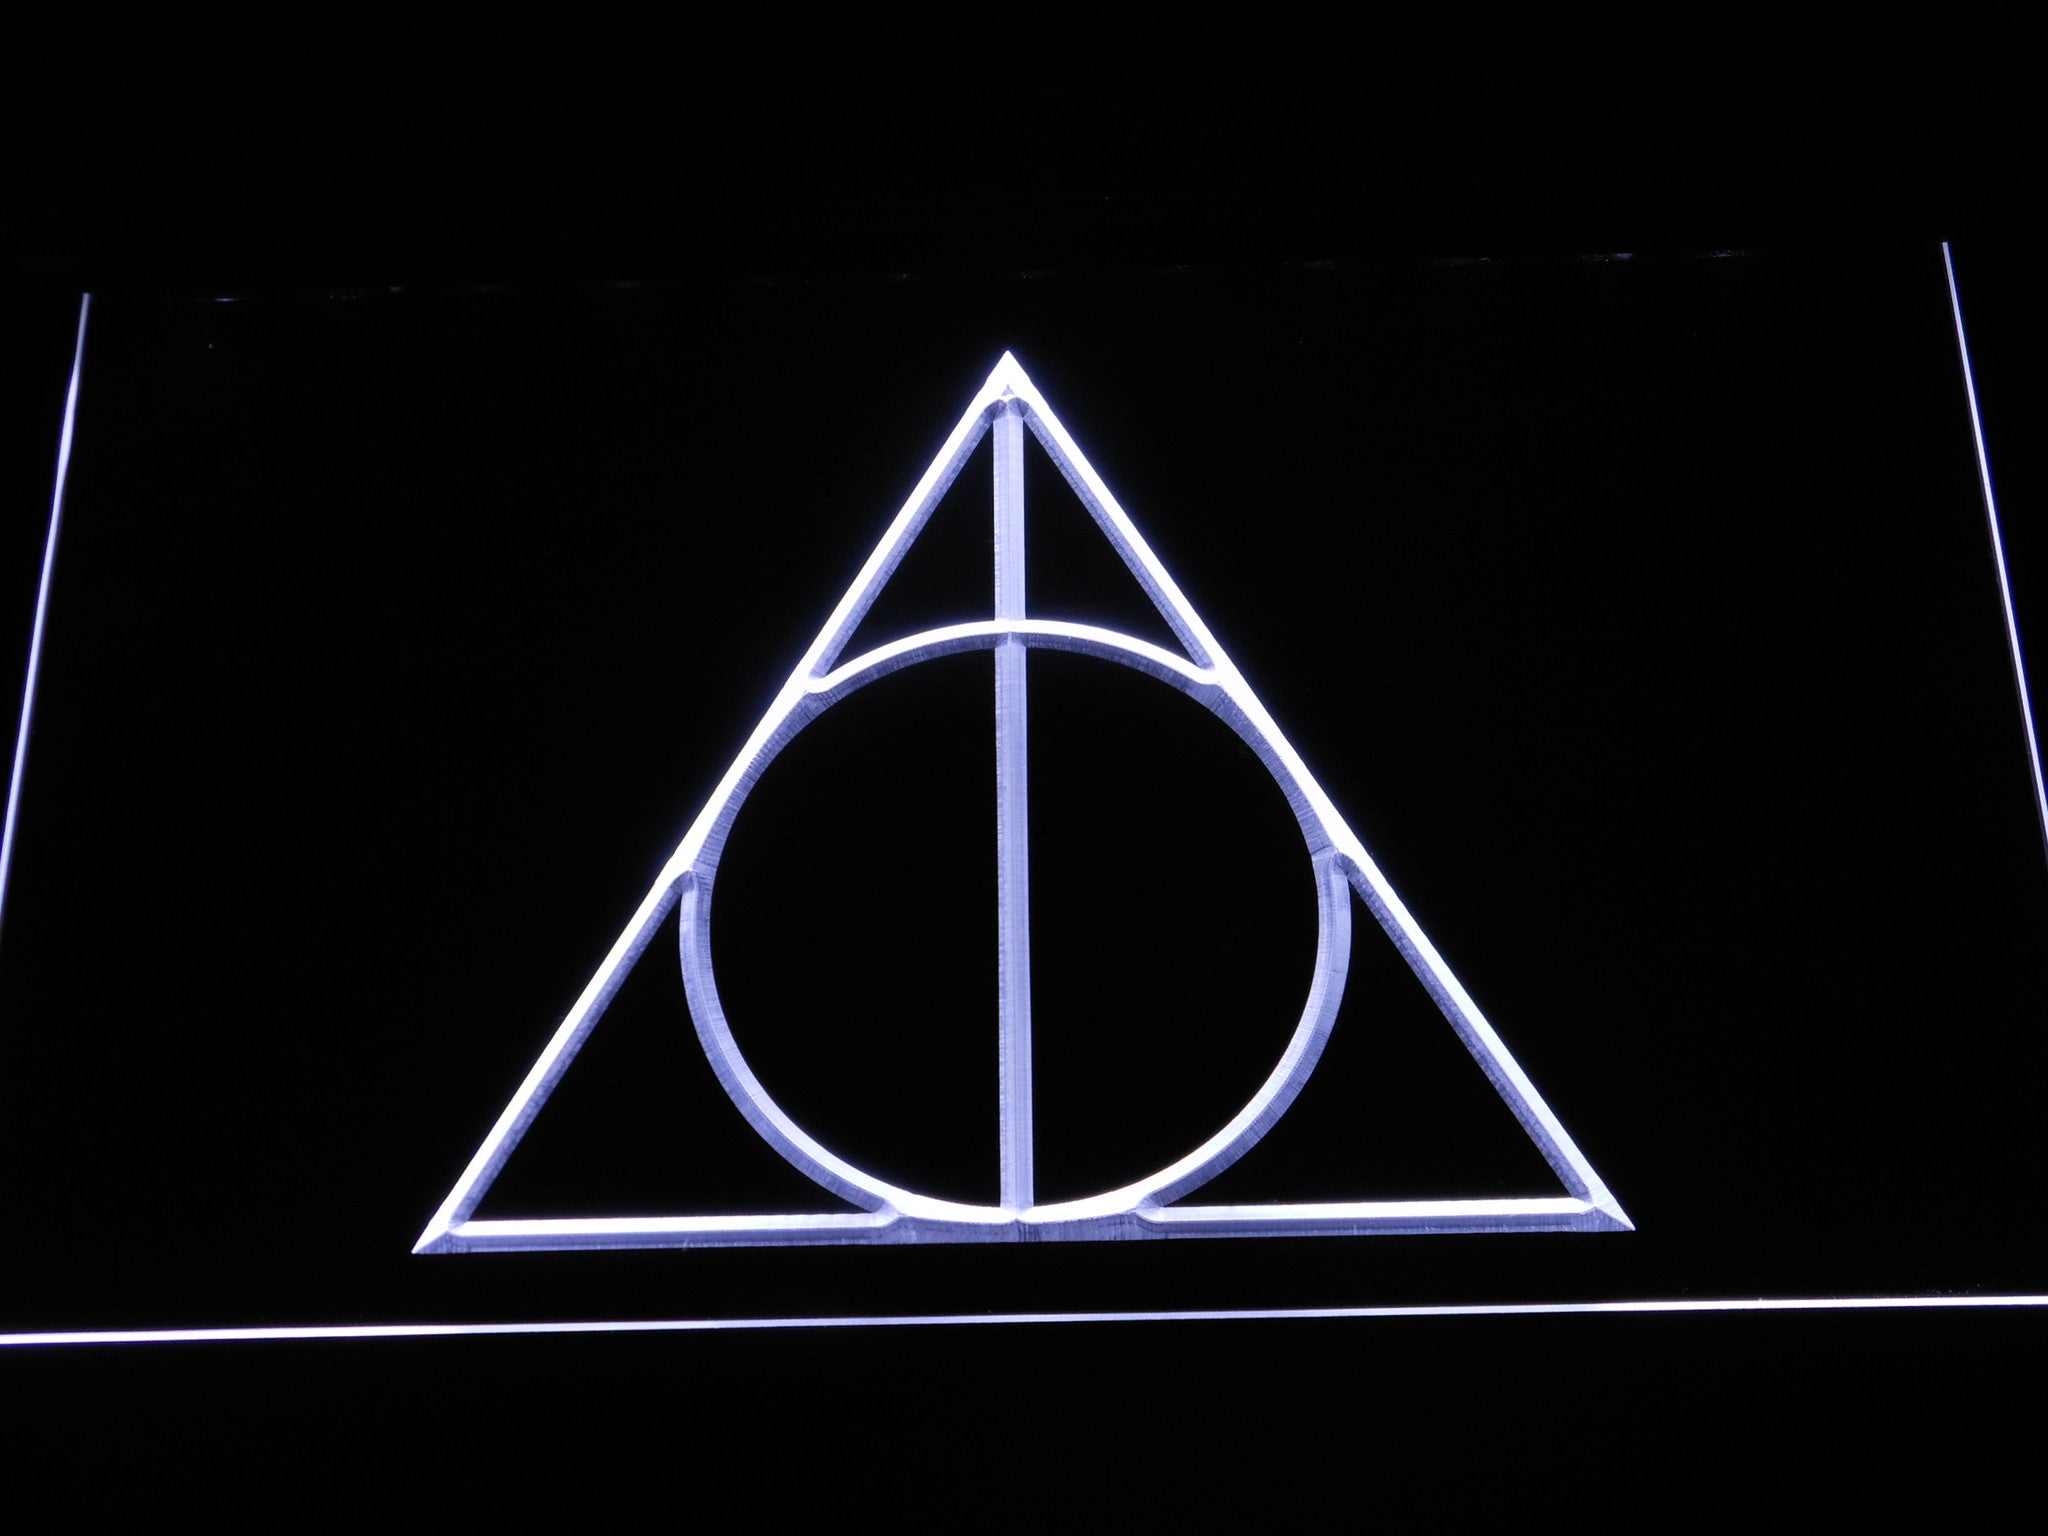 Harry potter and the deathly hallows led sign led sign club harry potter and the deathly hallows led sign buycottarizona